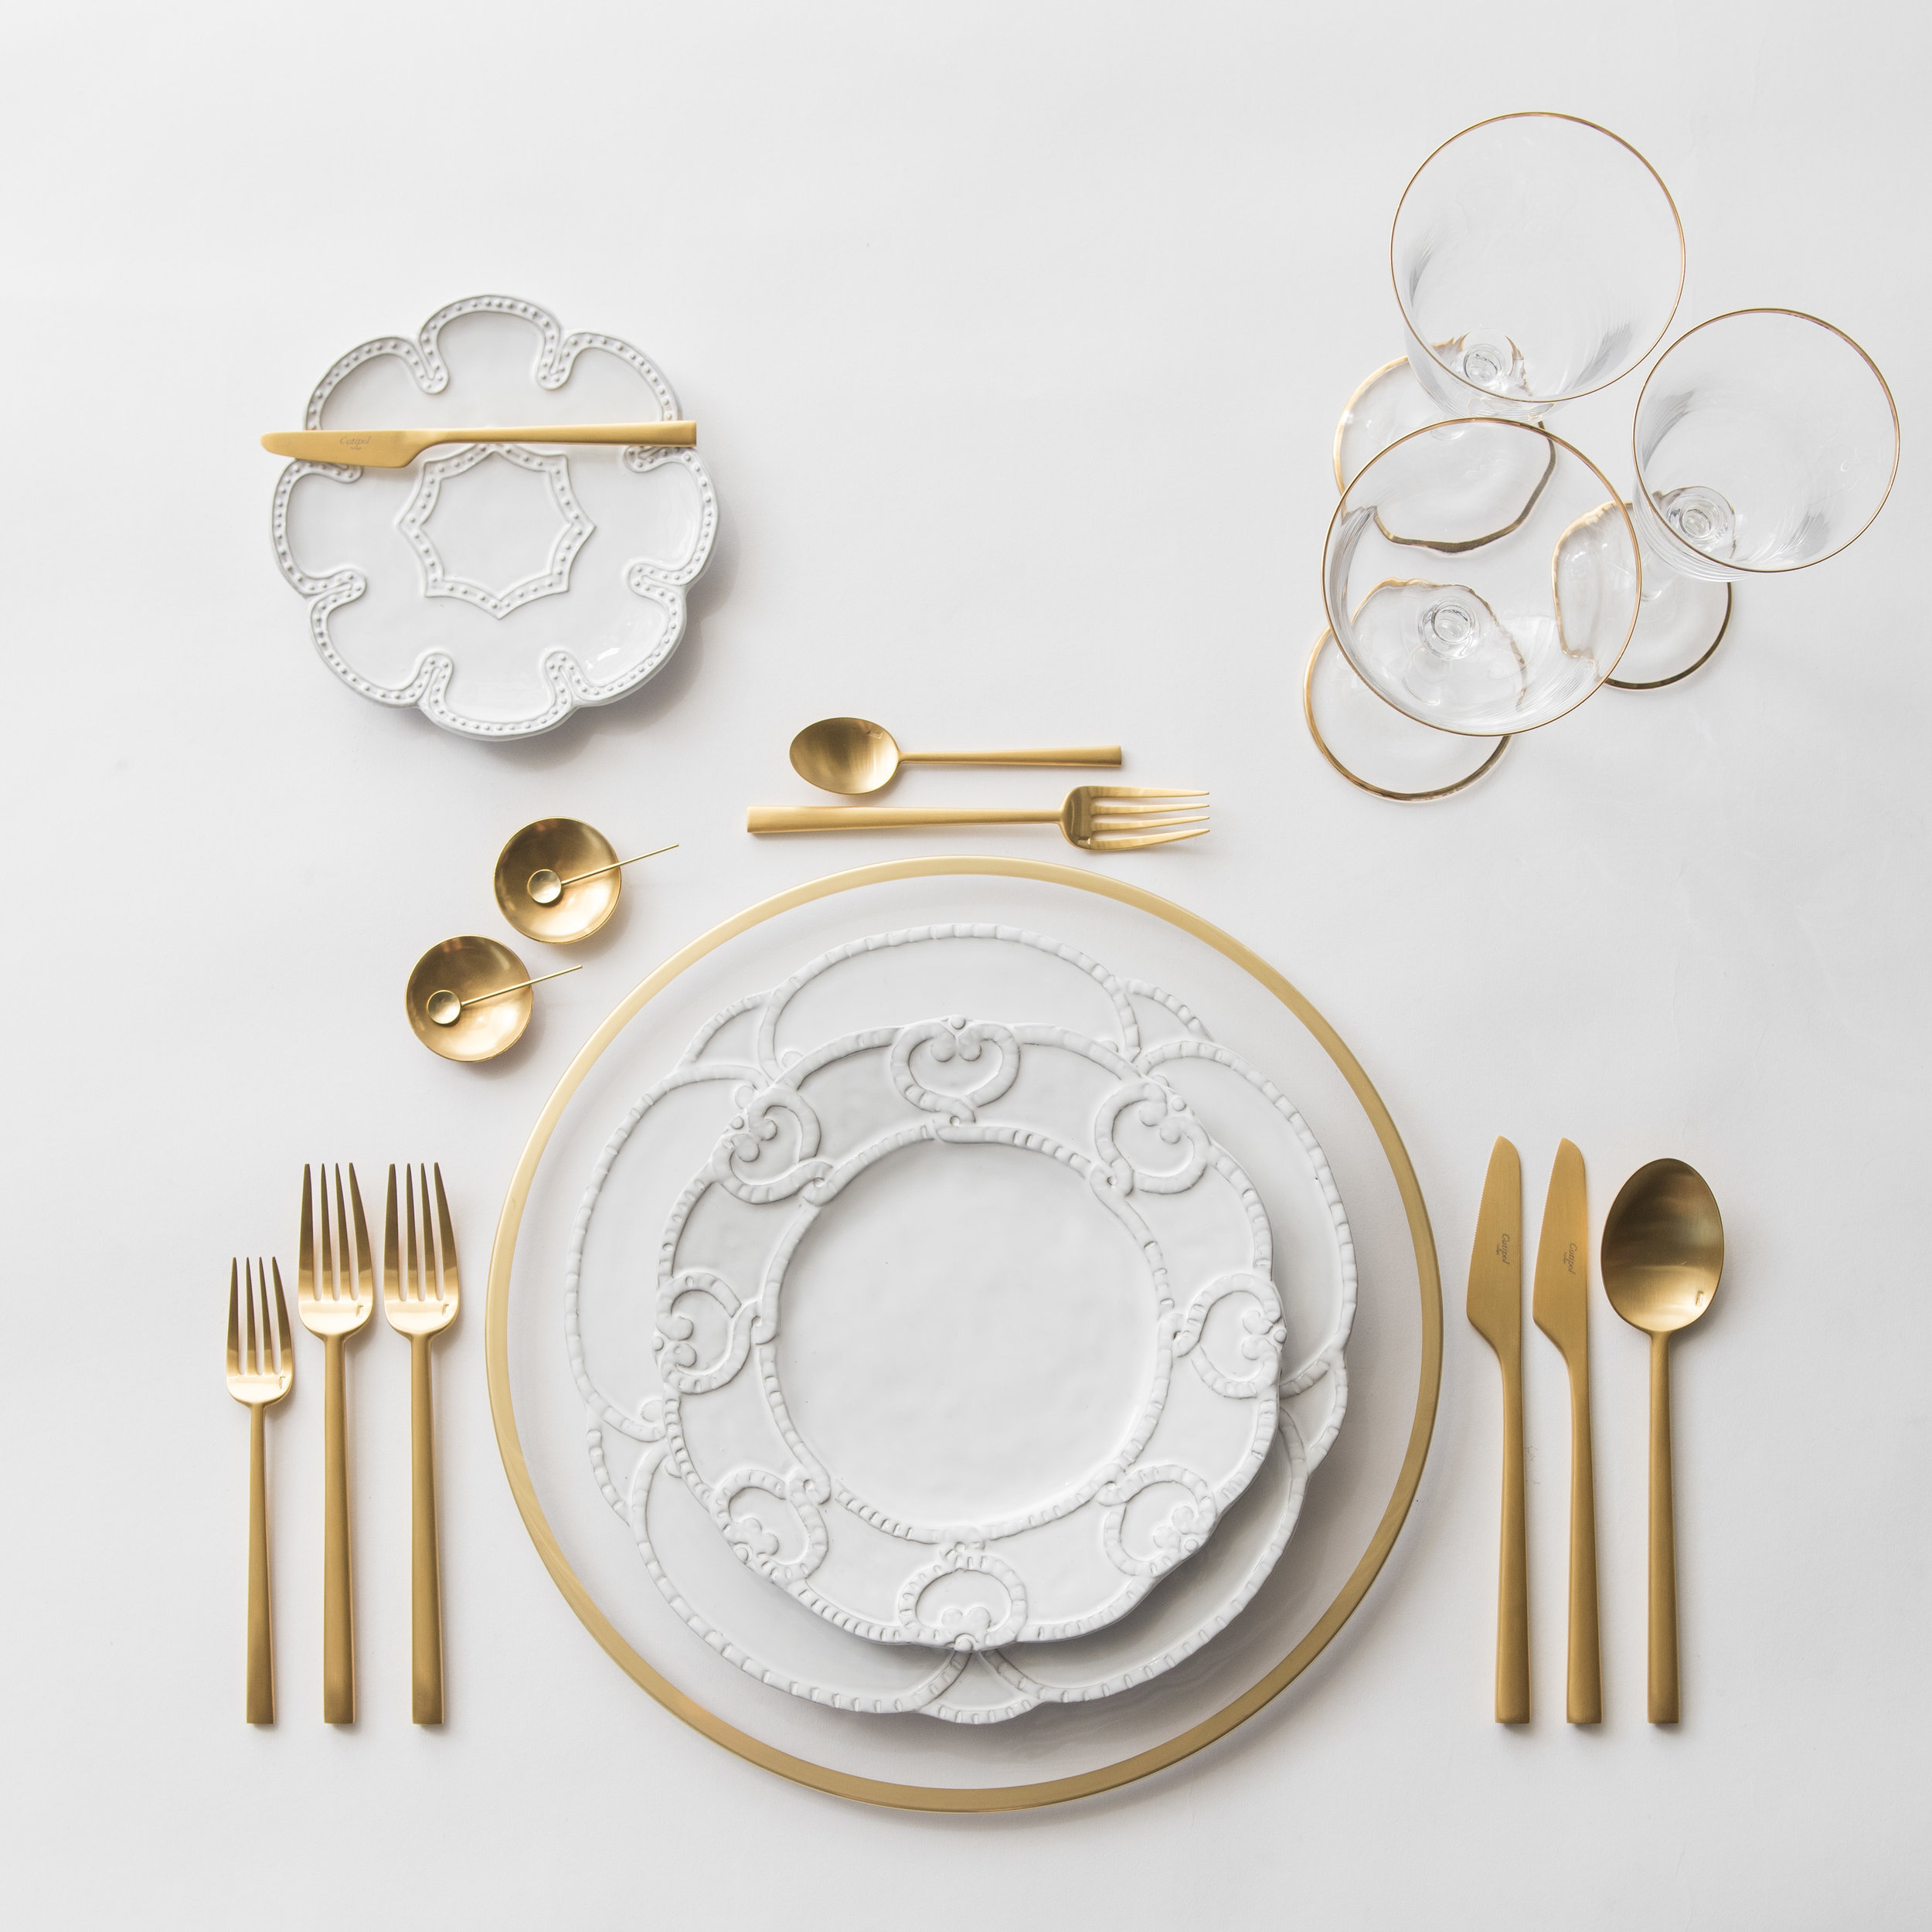 RENT: Halo Glass Chargers in 24k Gold + Signature Collection Dinnerware + Rondo Flatware in Brushed 24k Gold + Chloe 24k Gold Rimmed Stemware + 14k Gold Salt Cellars + Tiny Gold Spoons  SHOP:Halo Glass Chargers in 24k Gold + Rondo Flatware in Brushed 24k Gold + Chloe 24k Gold Rimmed Stemware + 14k Gold Salt Cellars + Tiny Gold Spoons